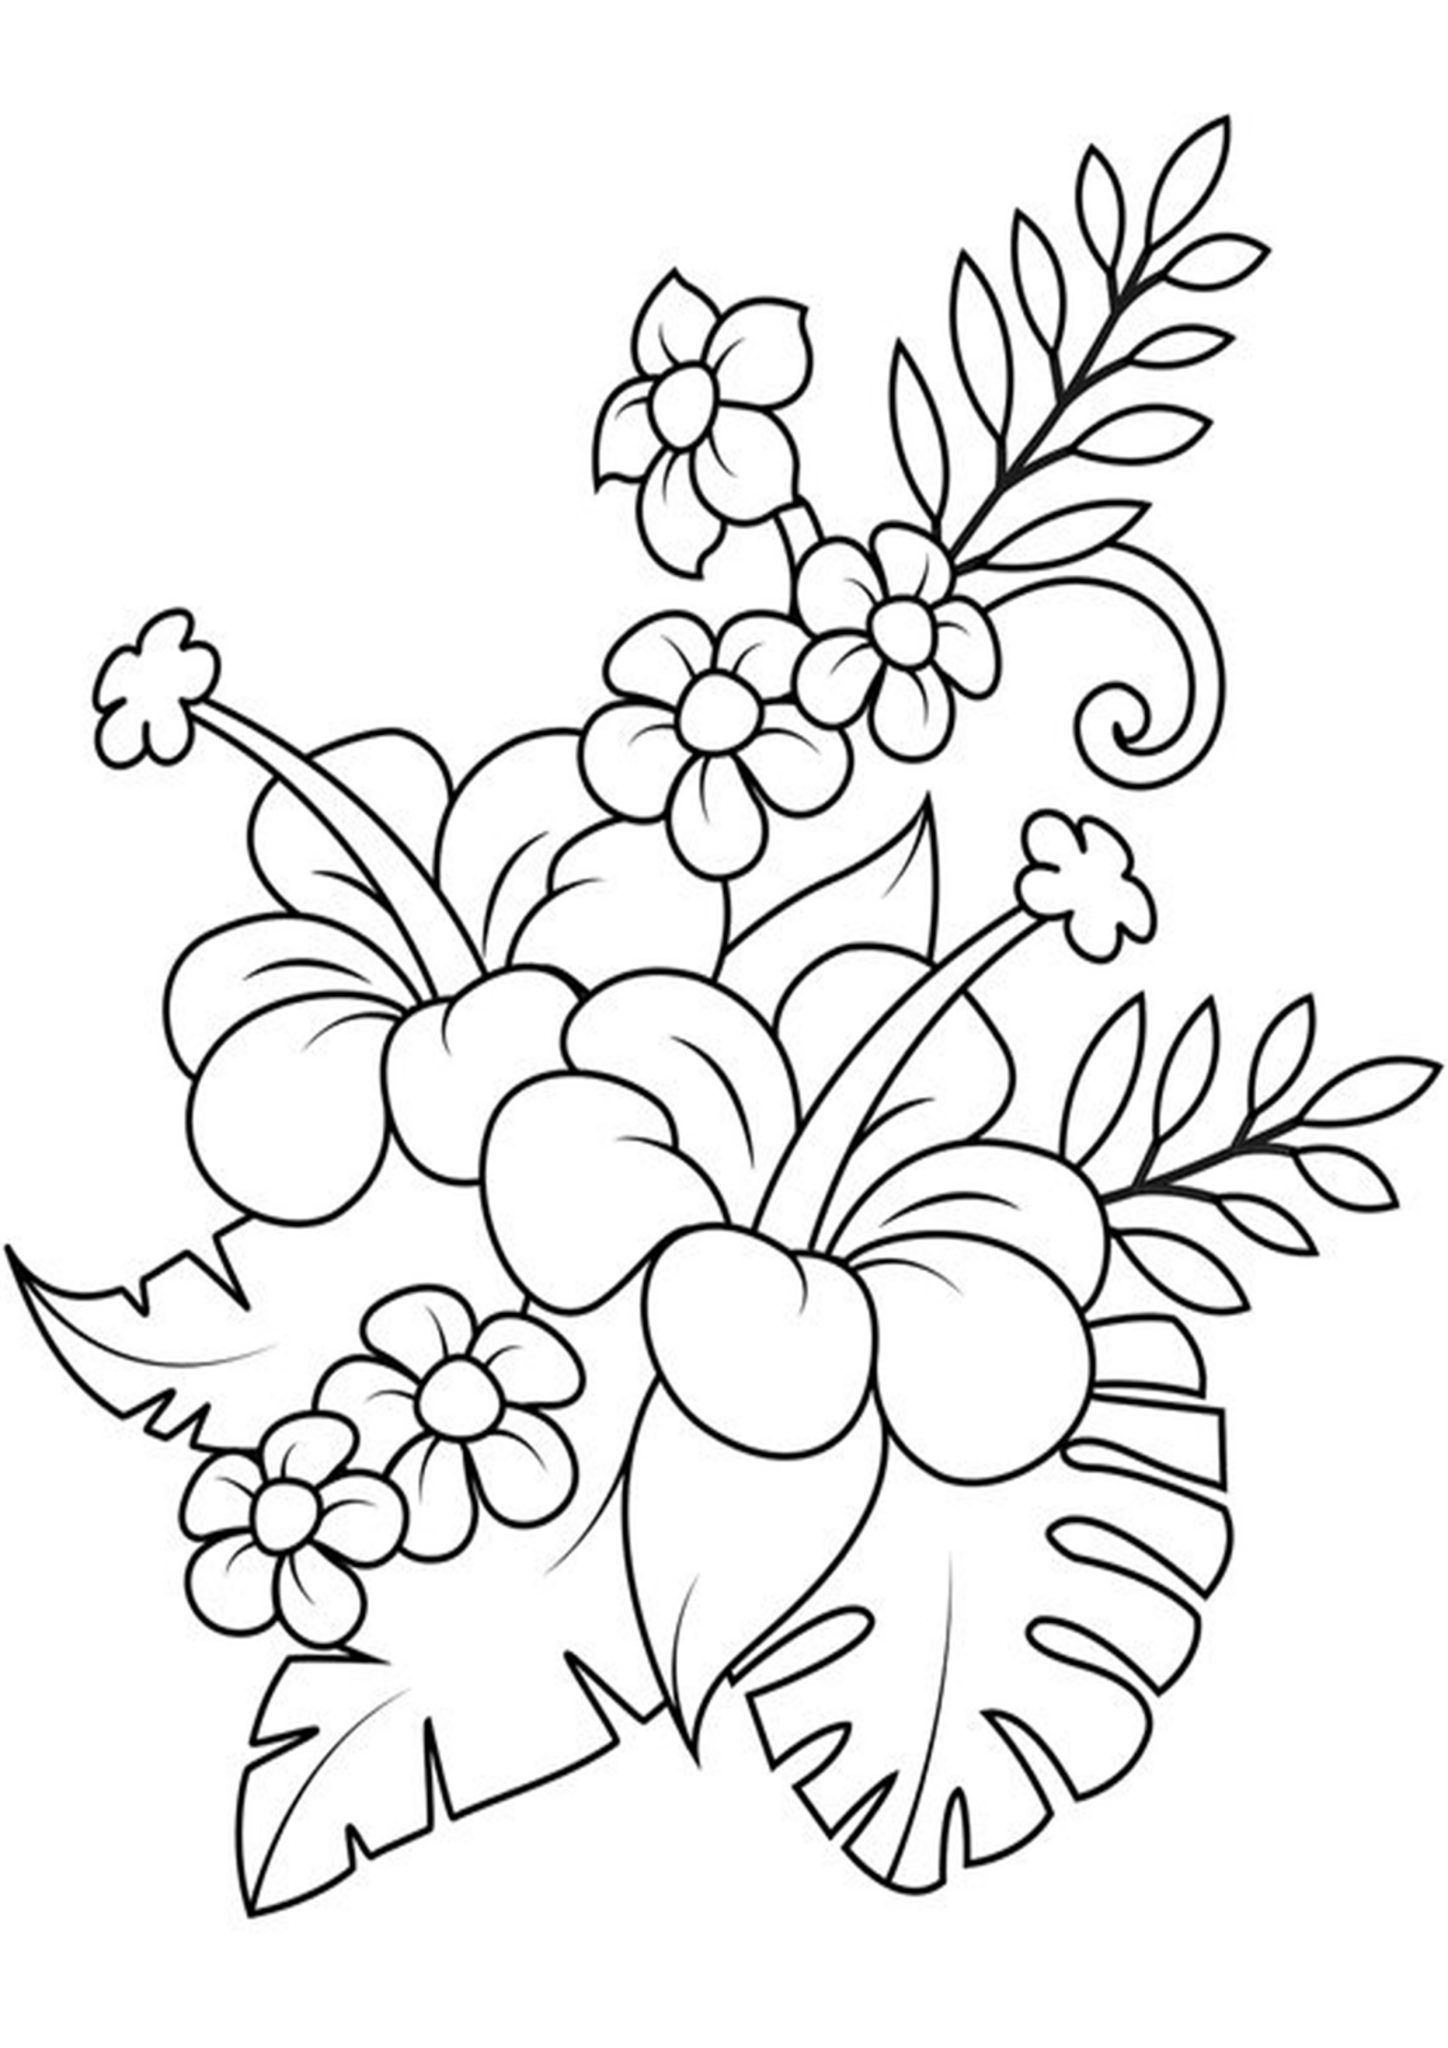 Free Easy To Print Flower Coloring Pages In 2020 Flower Coloring Pages Colouring Pages Leaf Coloring Page